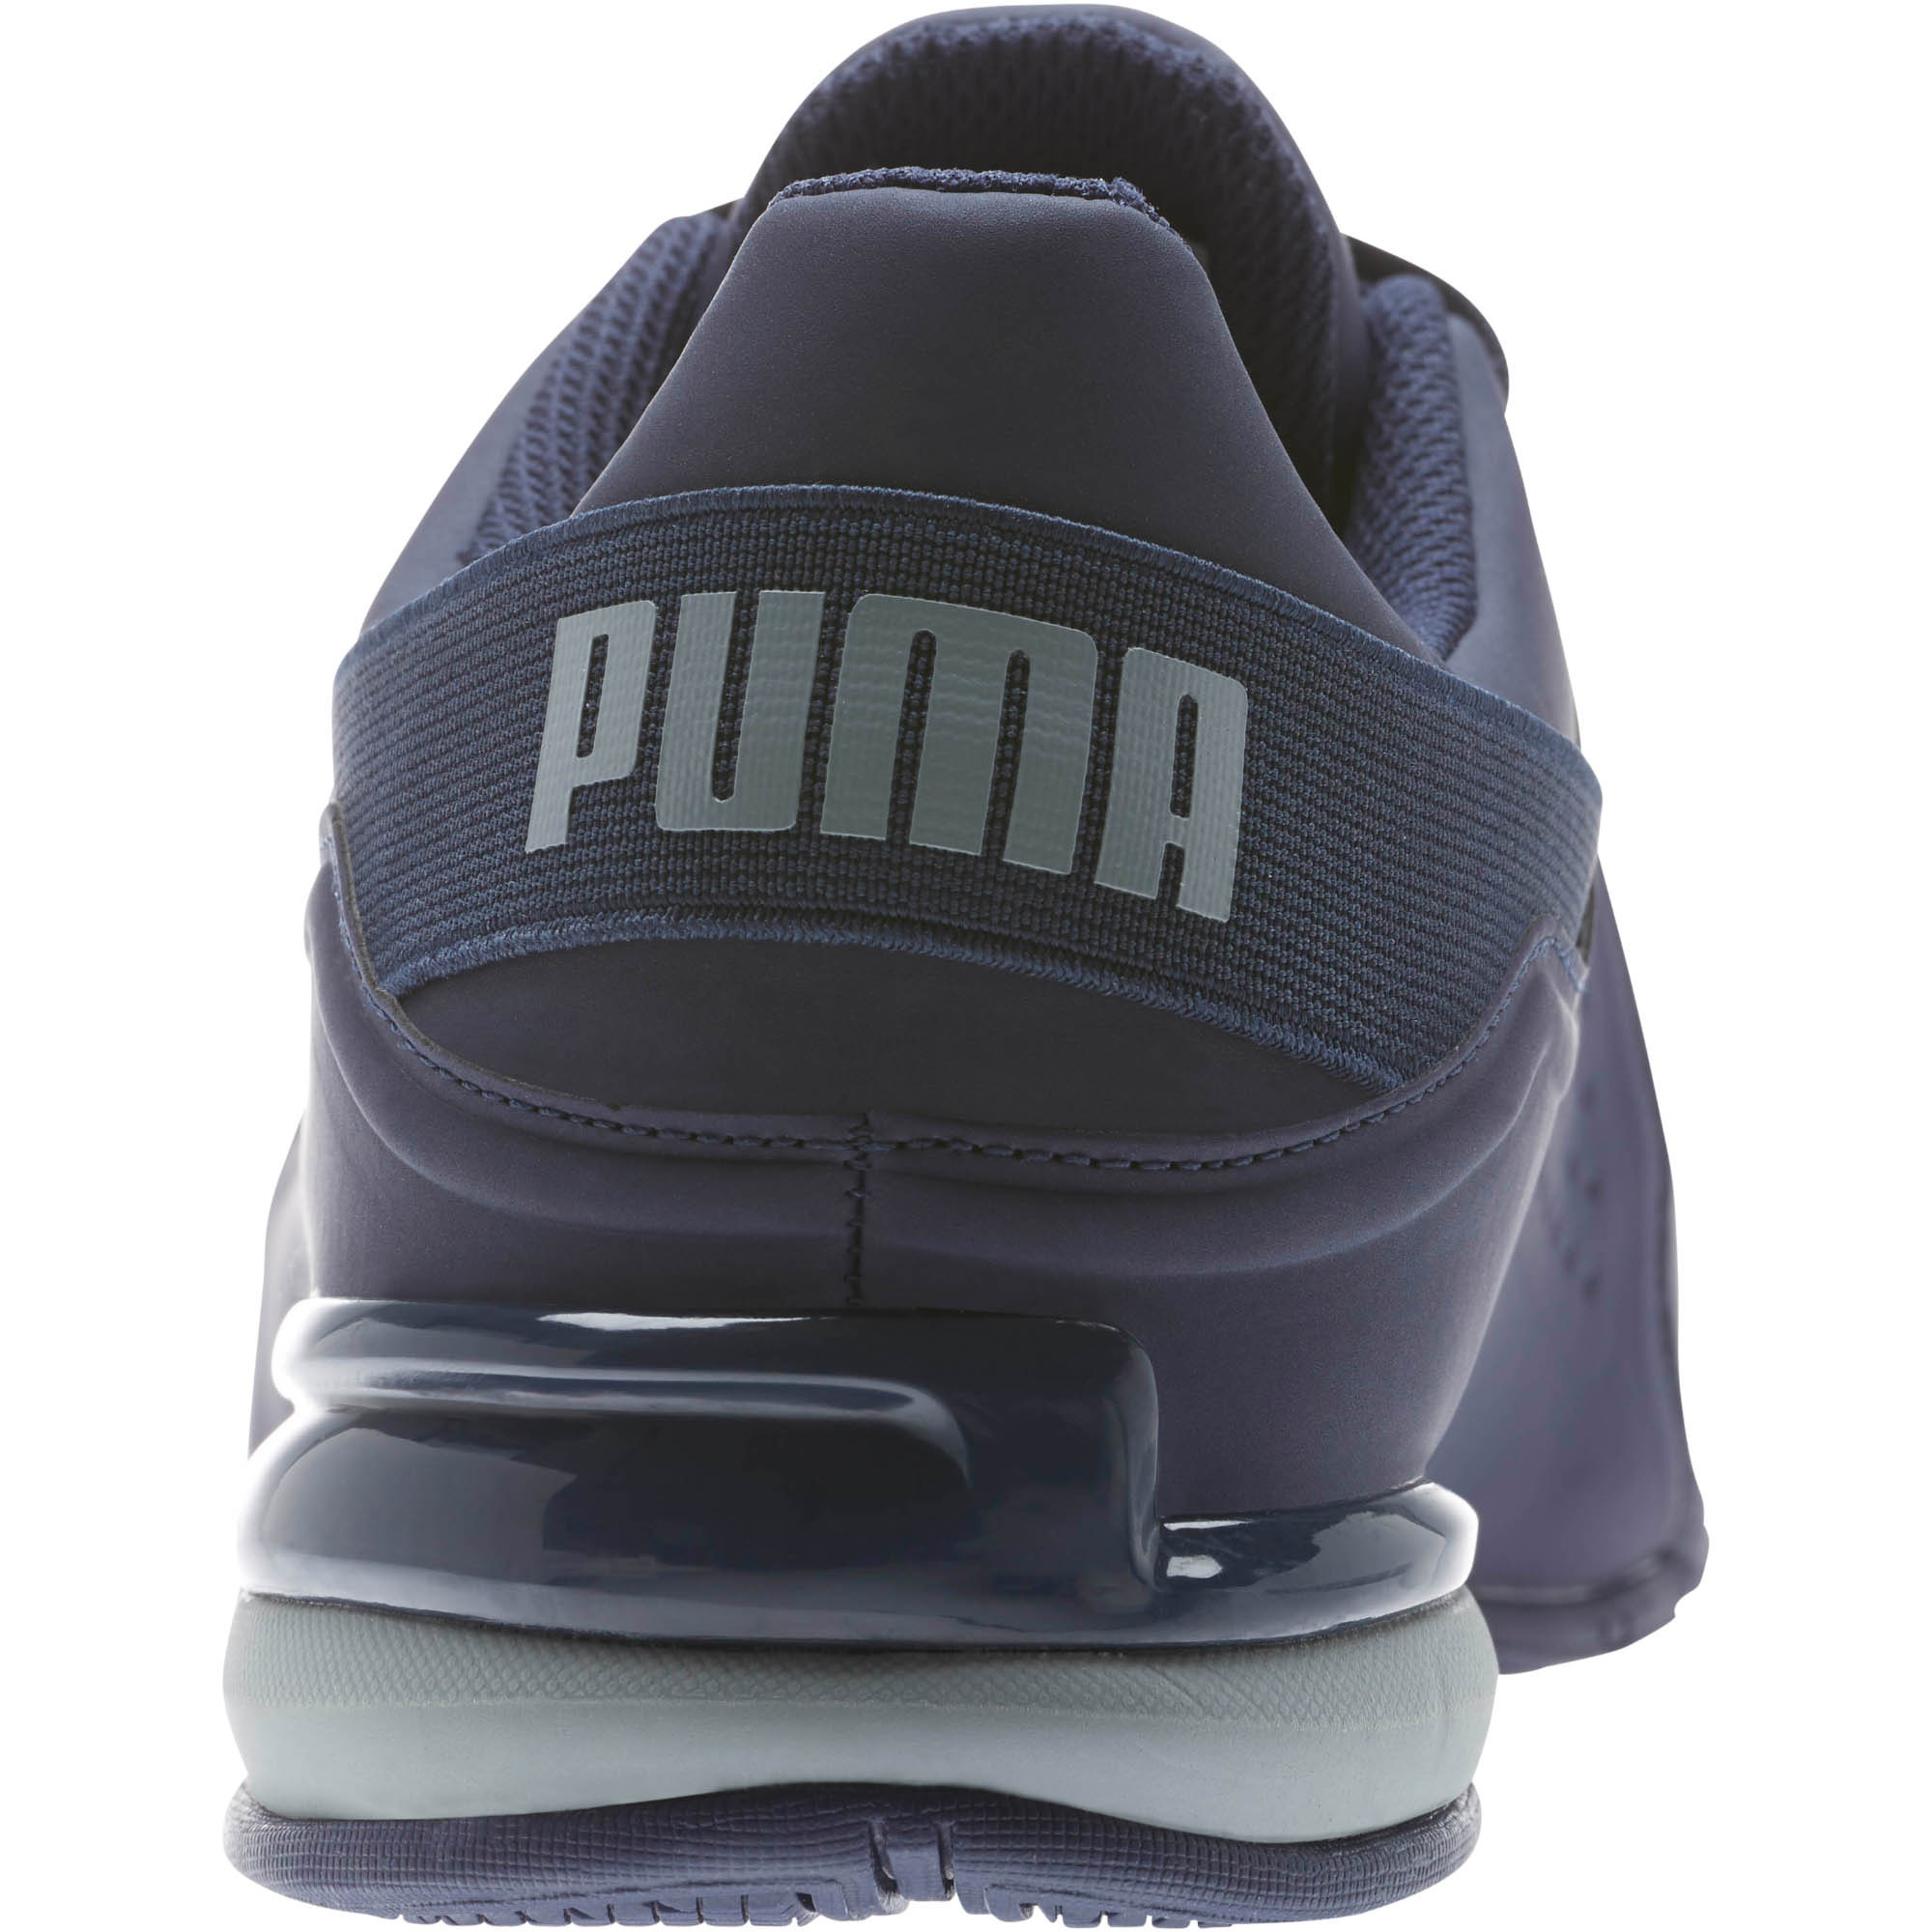 PUMA-Viz-Runner-Men-s-Running-Shoes-Men-Shoe-Running thumbnail 13